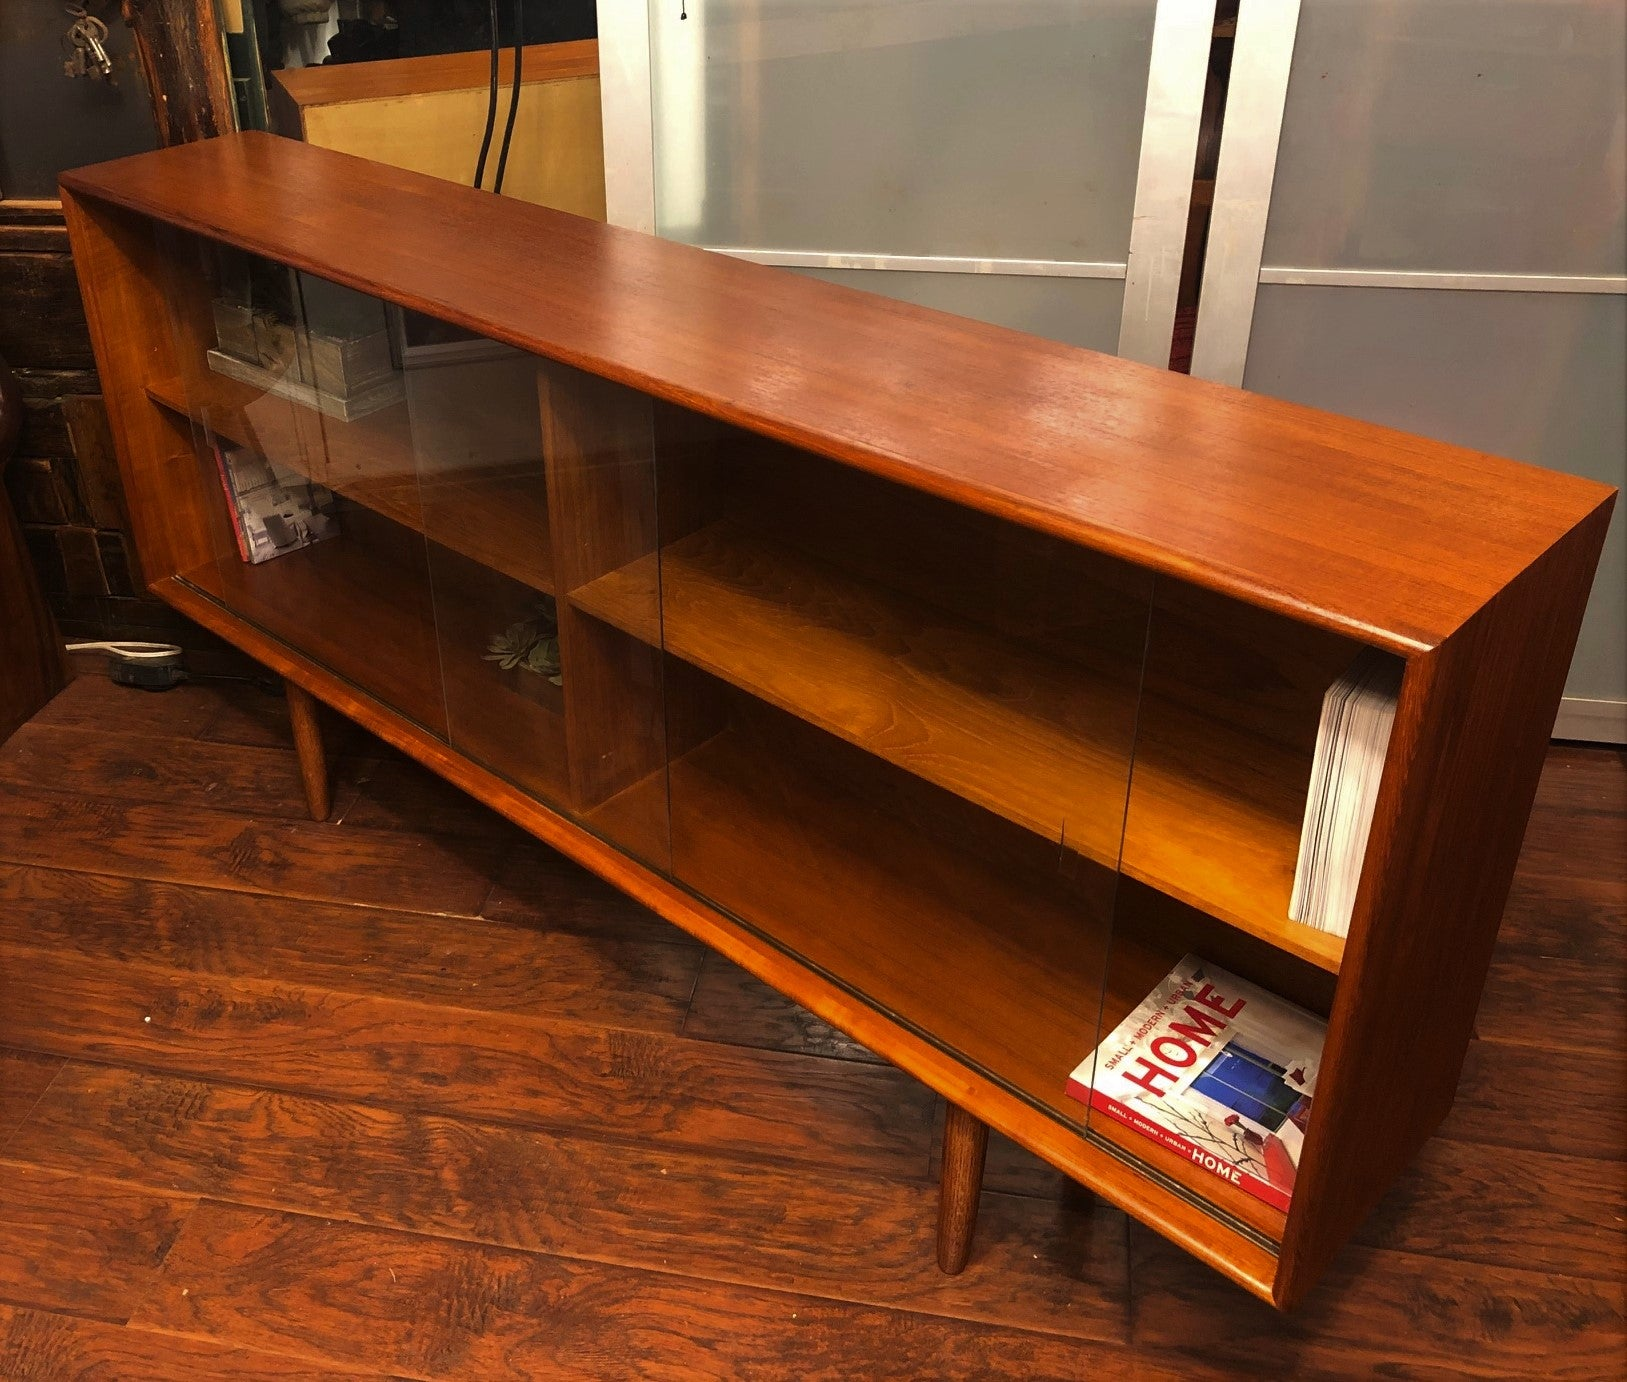 Refinished Danish Mcm Teak Bookcase Display Narrow Perfect